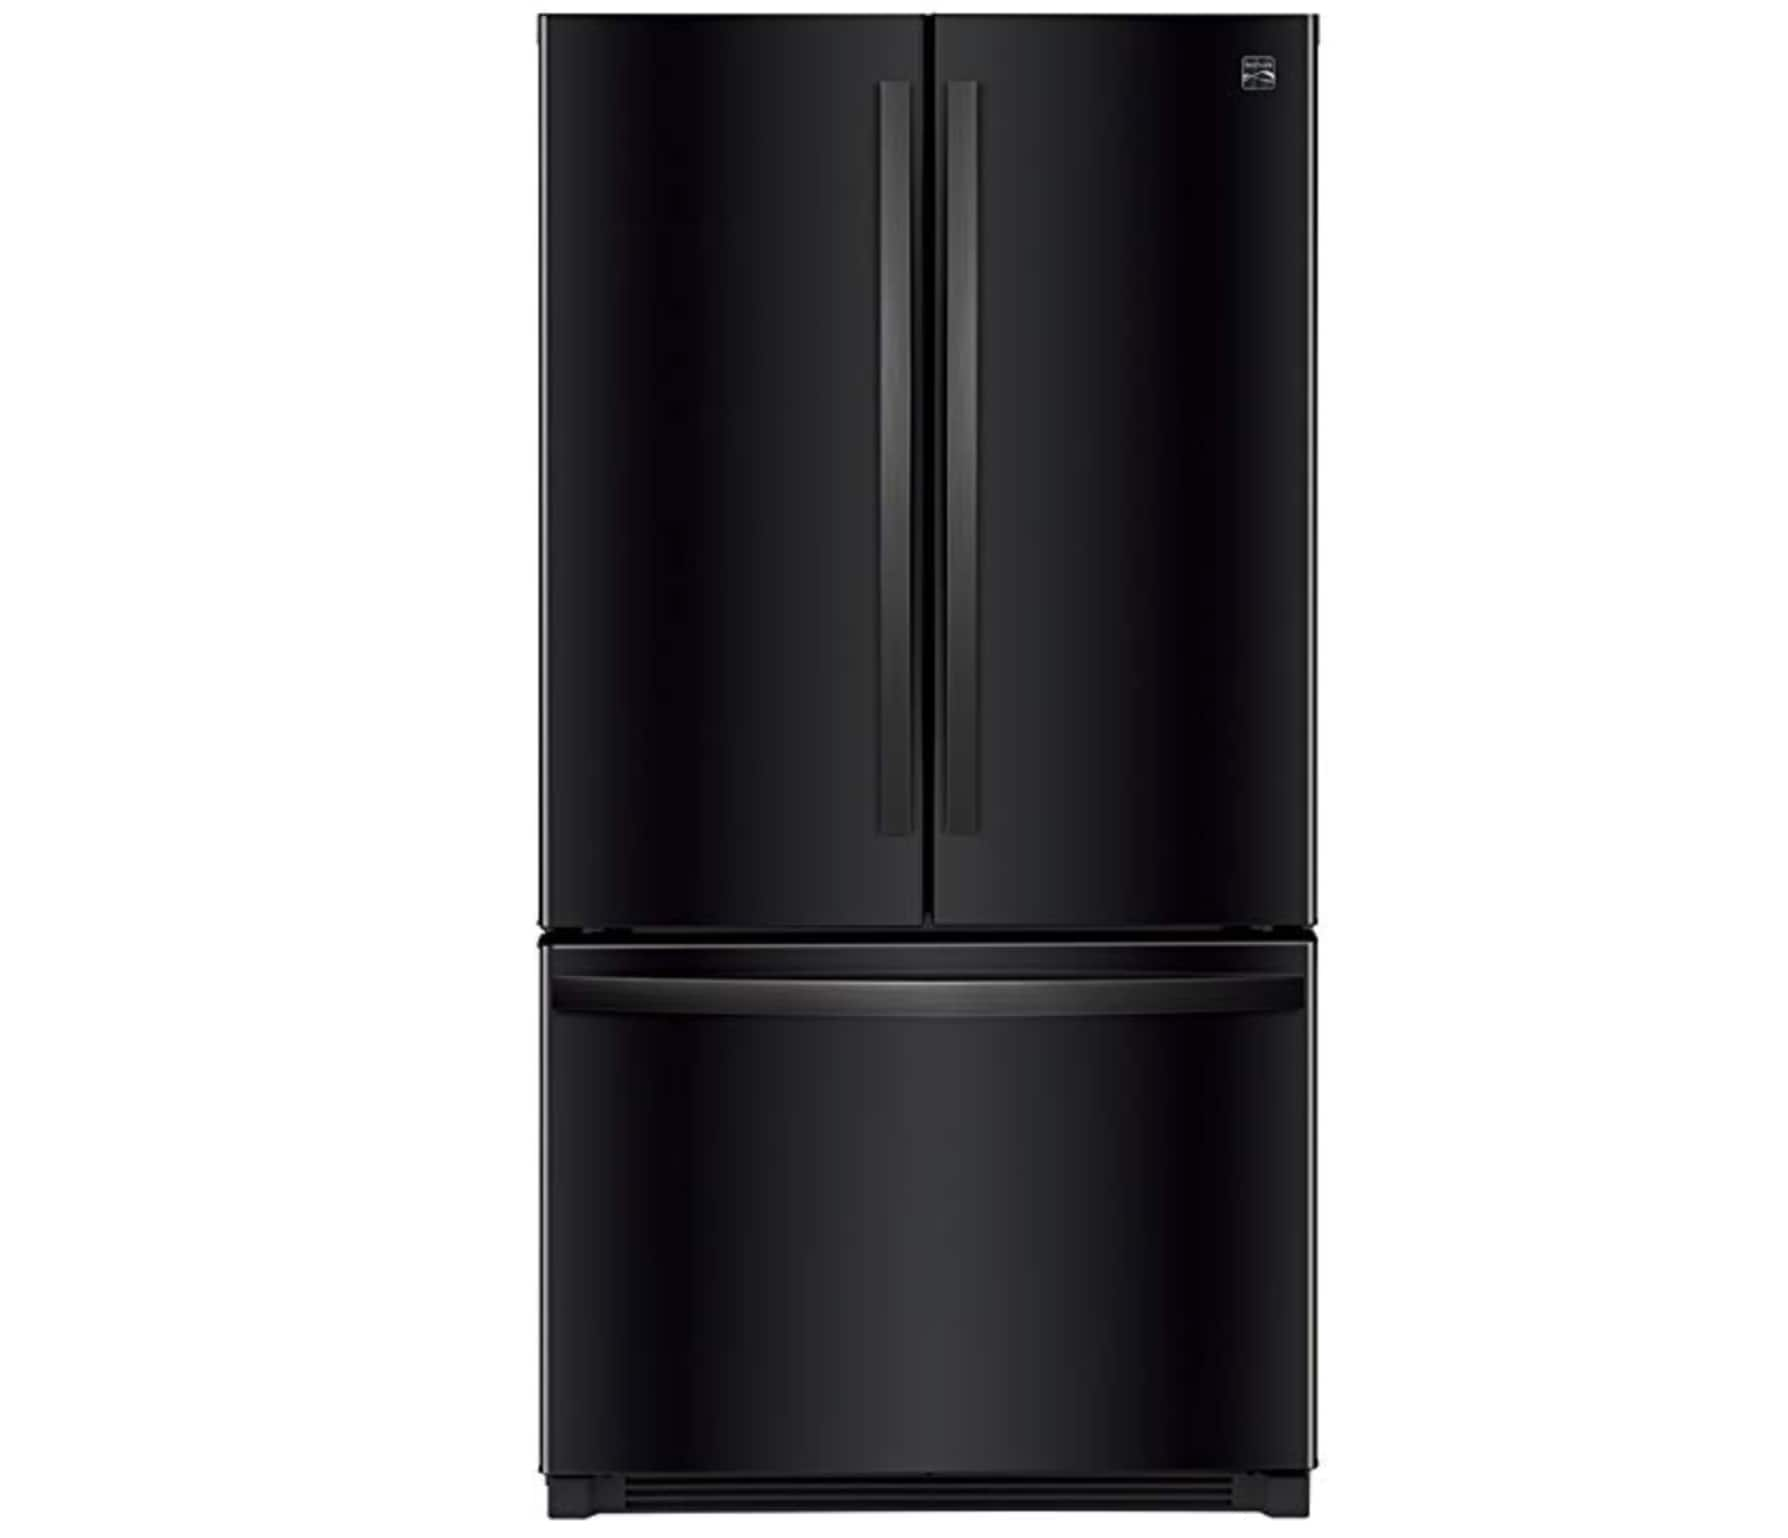 Black Friday Home Deals: Appliances